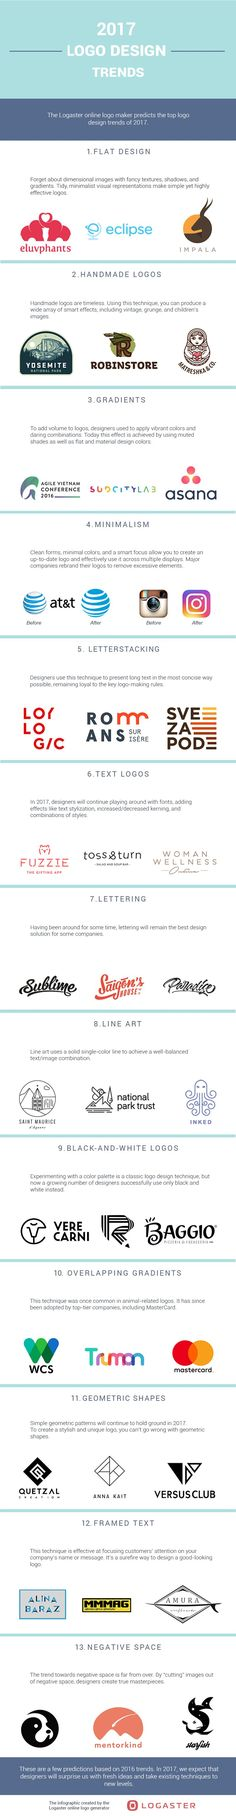 Logo Design Trends for 2017: Is Your Logo Up to Date? [Infographic] - @redwebdesign